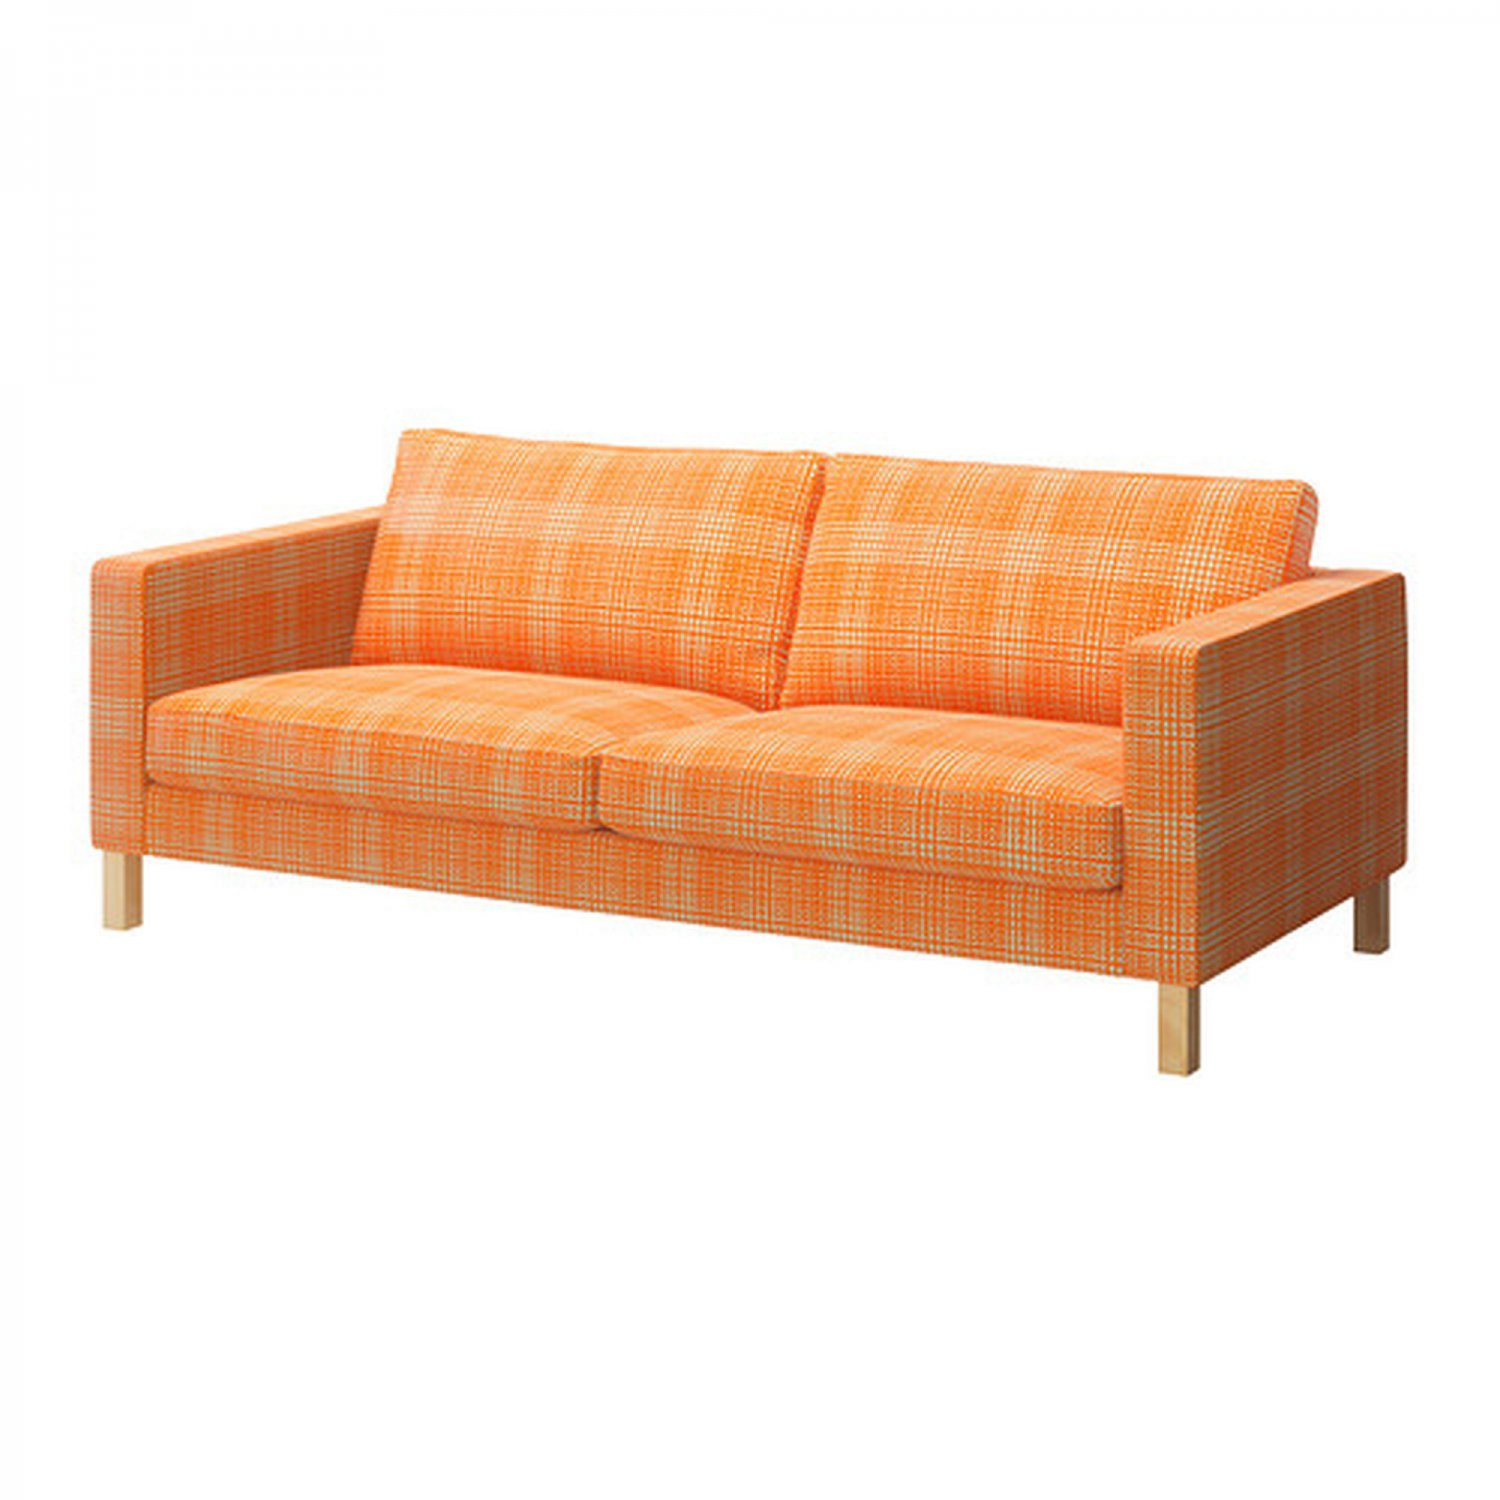 ikea karlstad chair track chairs for wounded veterans 3 seat sofa slipcover cover husie orange print